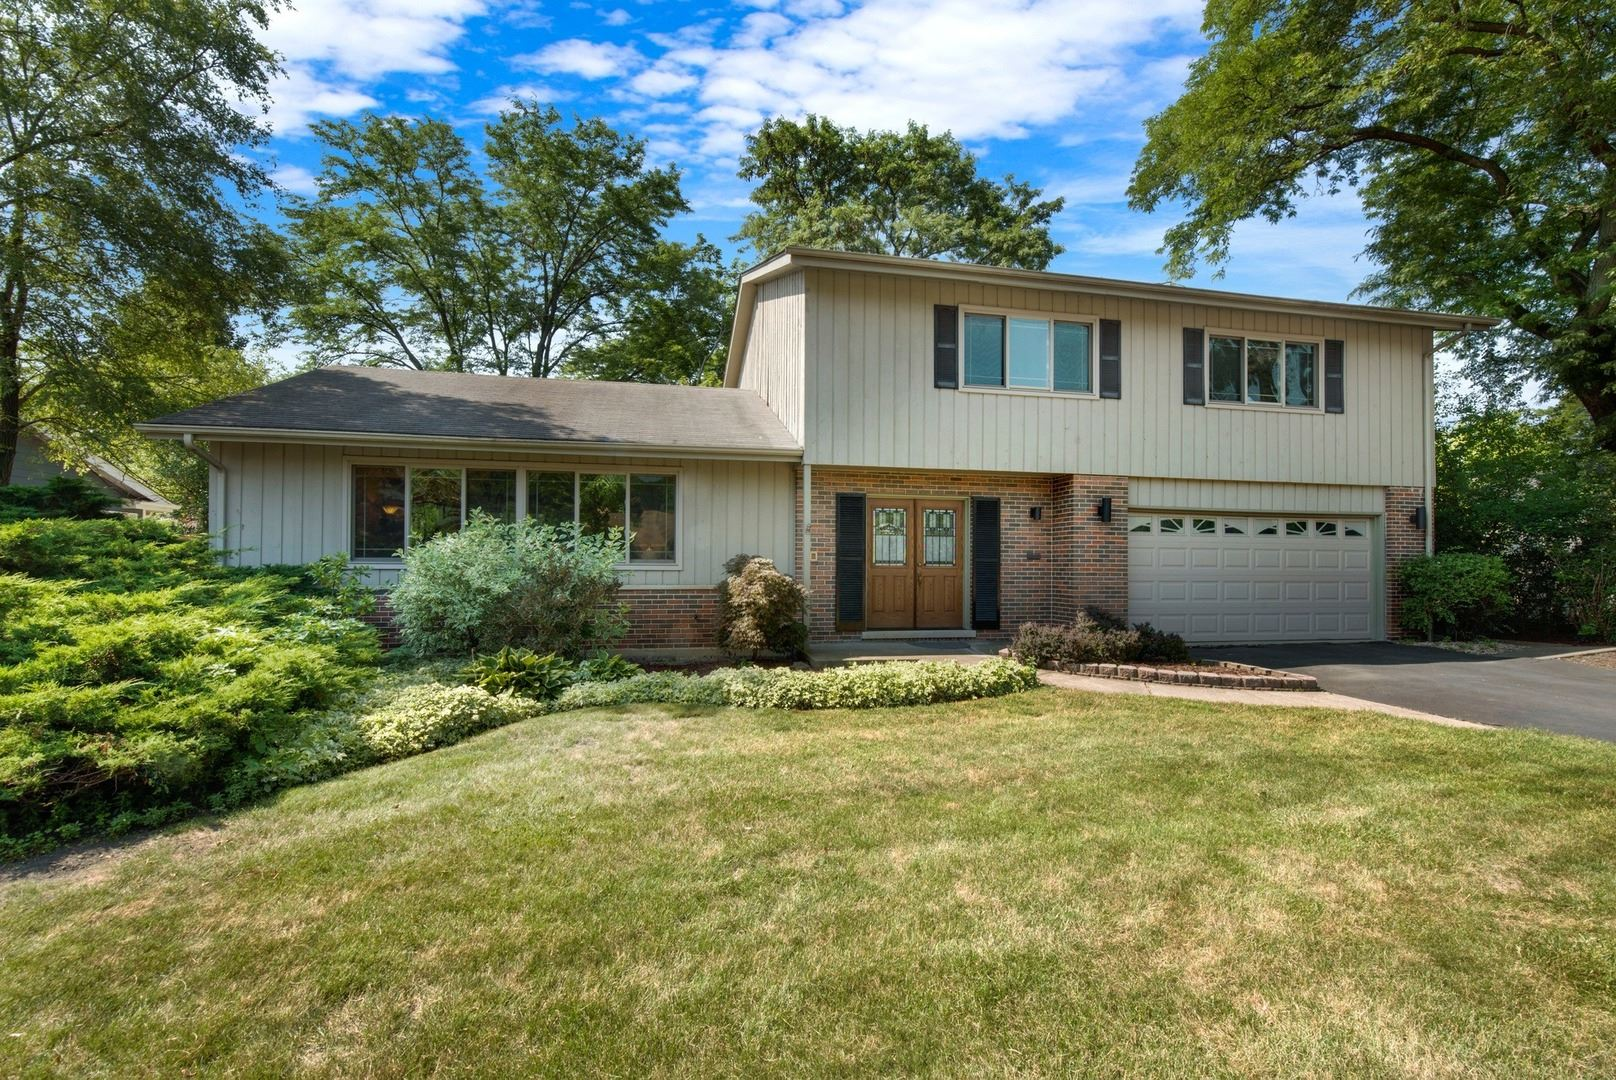 2607 Mulberry Lane, Northbrook, IL 60062 - #: 10769611